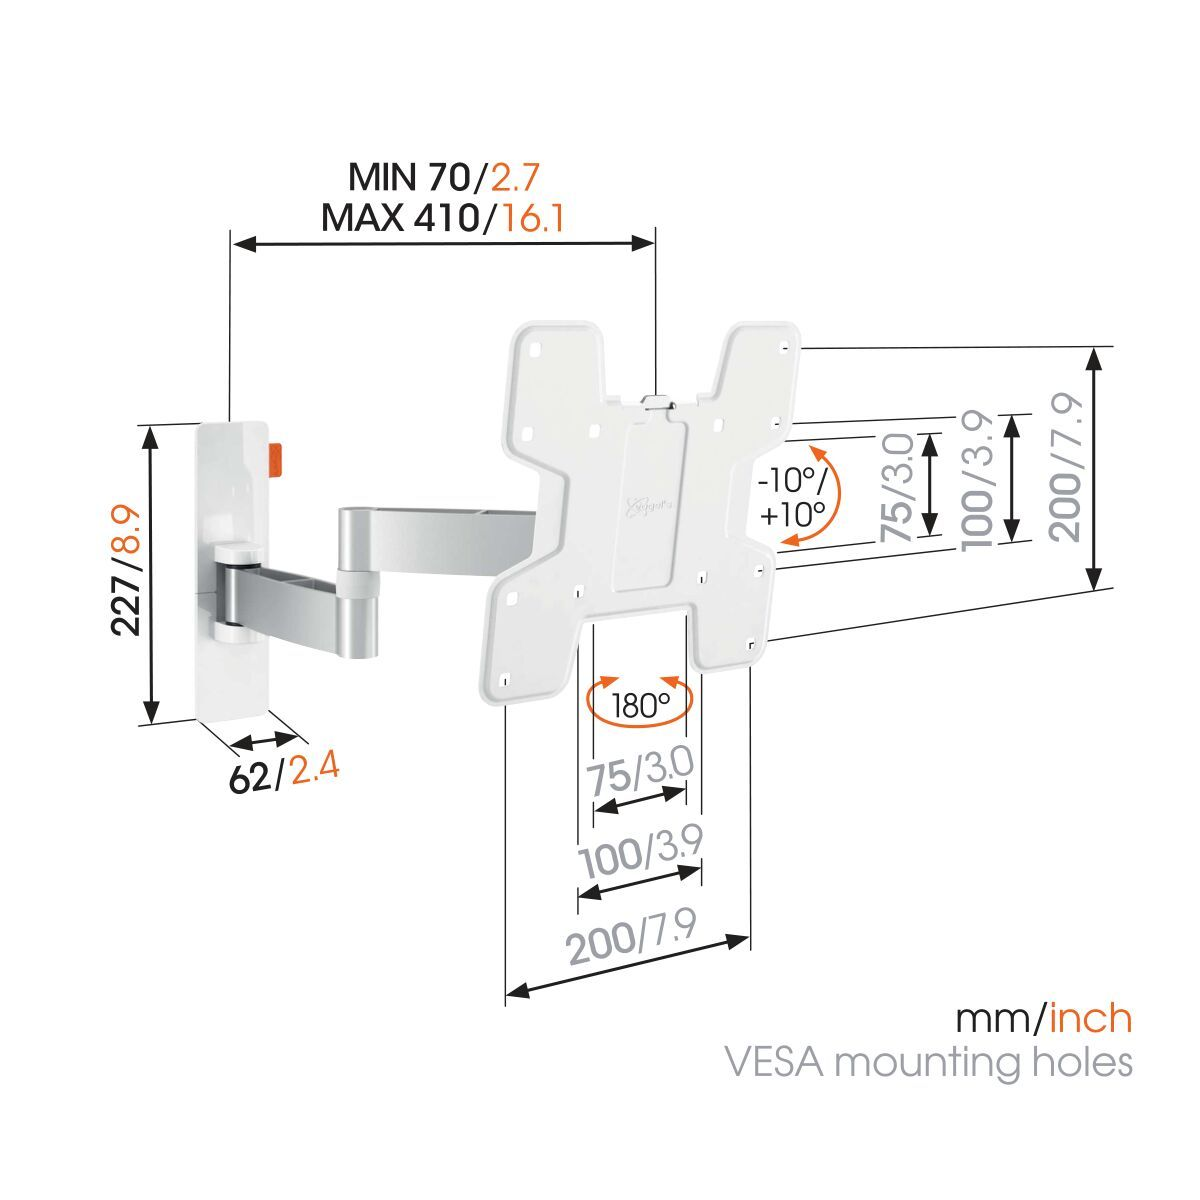 Vogel's WALL 3145 Full-Motion TV Wall Mount (white) - Suitable for 19 up to 43 inch TVs - Full motion (up to 180°) - Tilt -10°/+10° - Dimensions